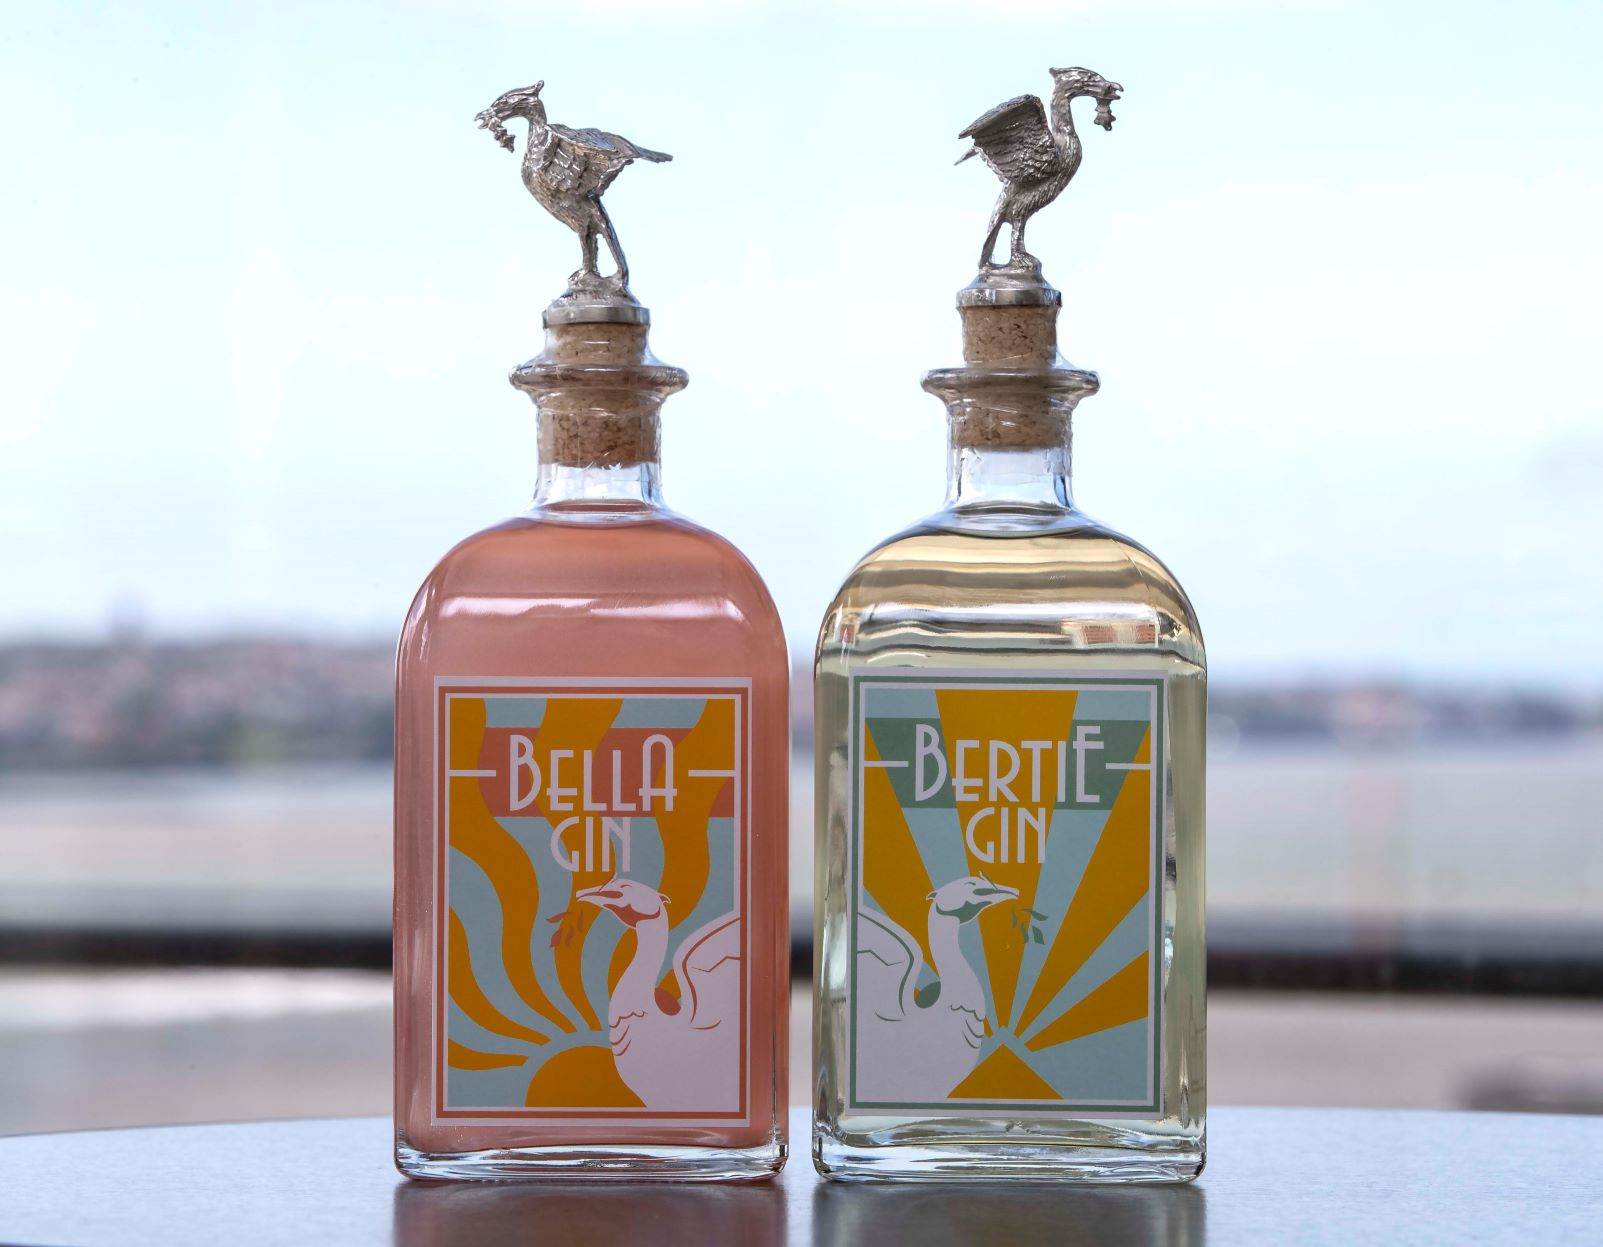 rlb360-gin-180719-1-bella-and-bertie.jpg